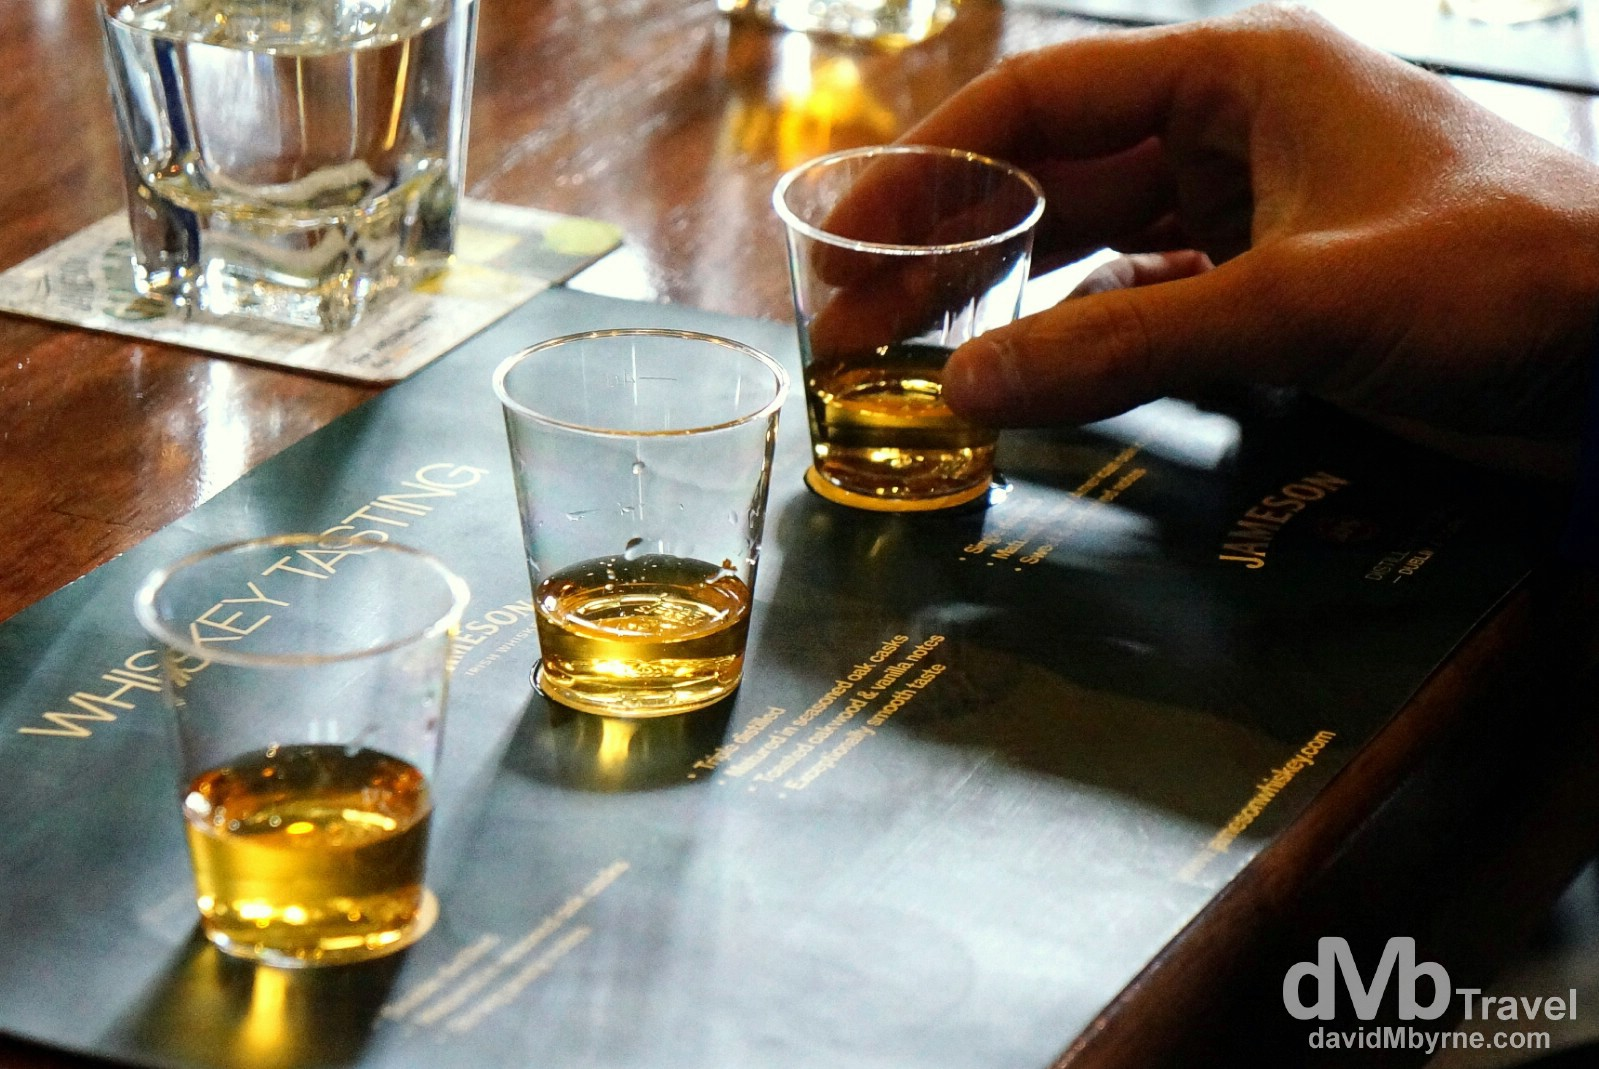 Irish vs Scottish vs American. Whiskey tasting at the Jameson Distillery in Midleton, Co. Cork, Ireland. August 30, 2014.